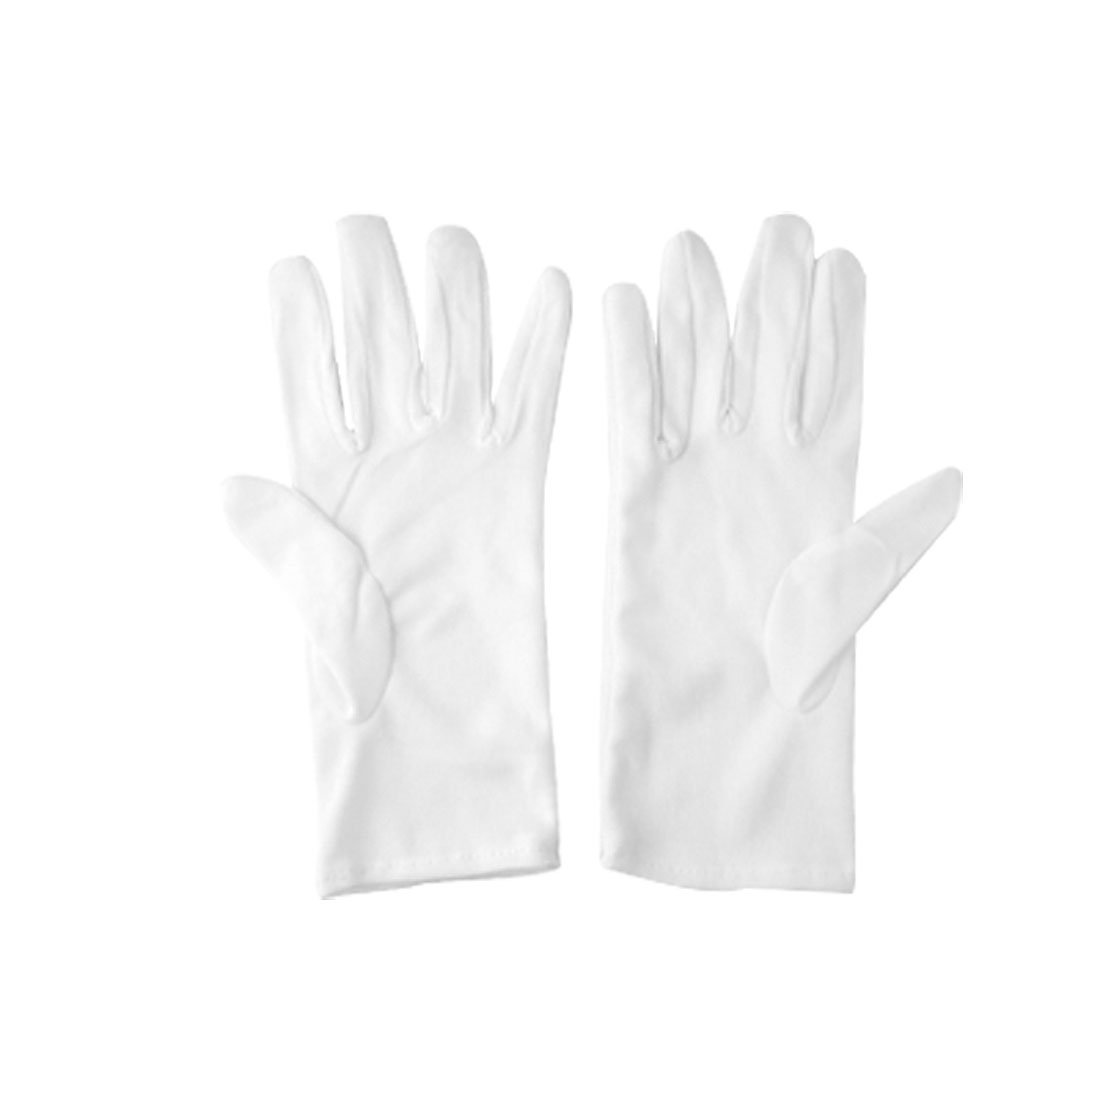 AUTO Ladies White Cotton Thin Full Fingers Work Driving Gloves S 2 Pairs